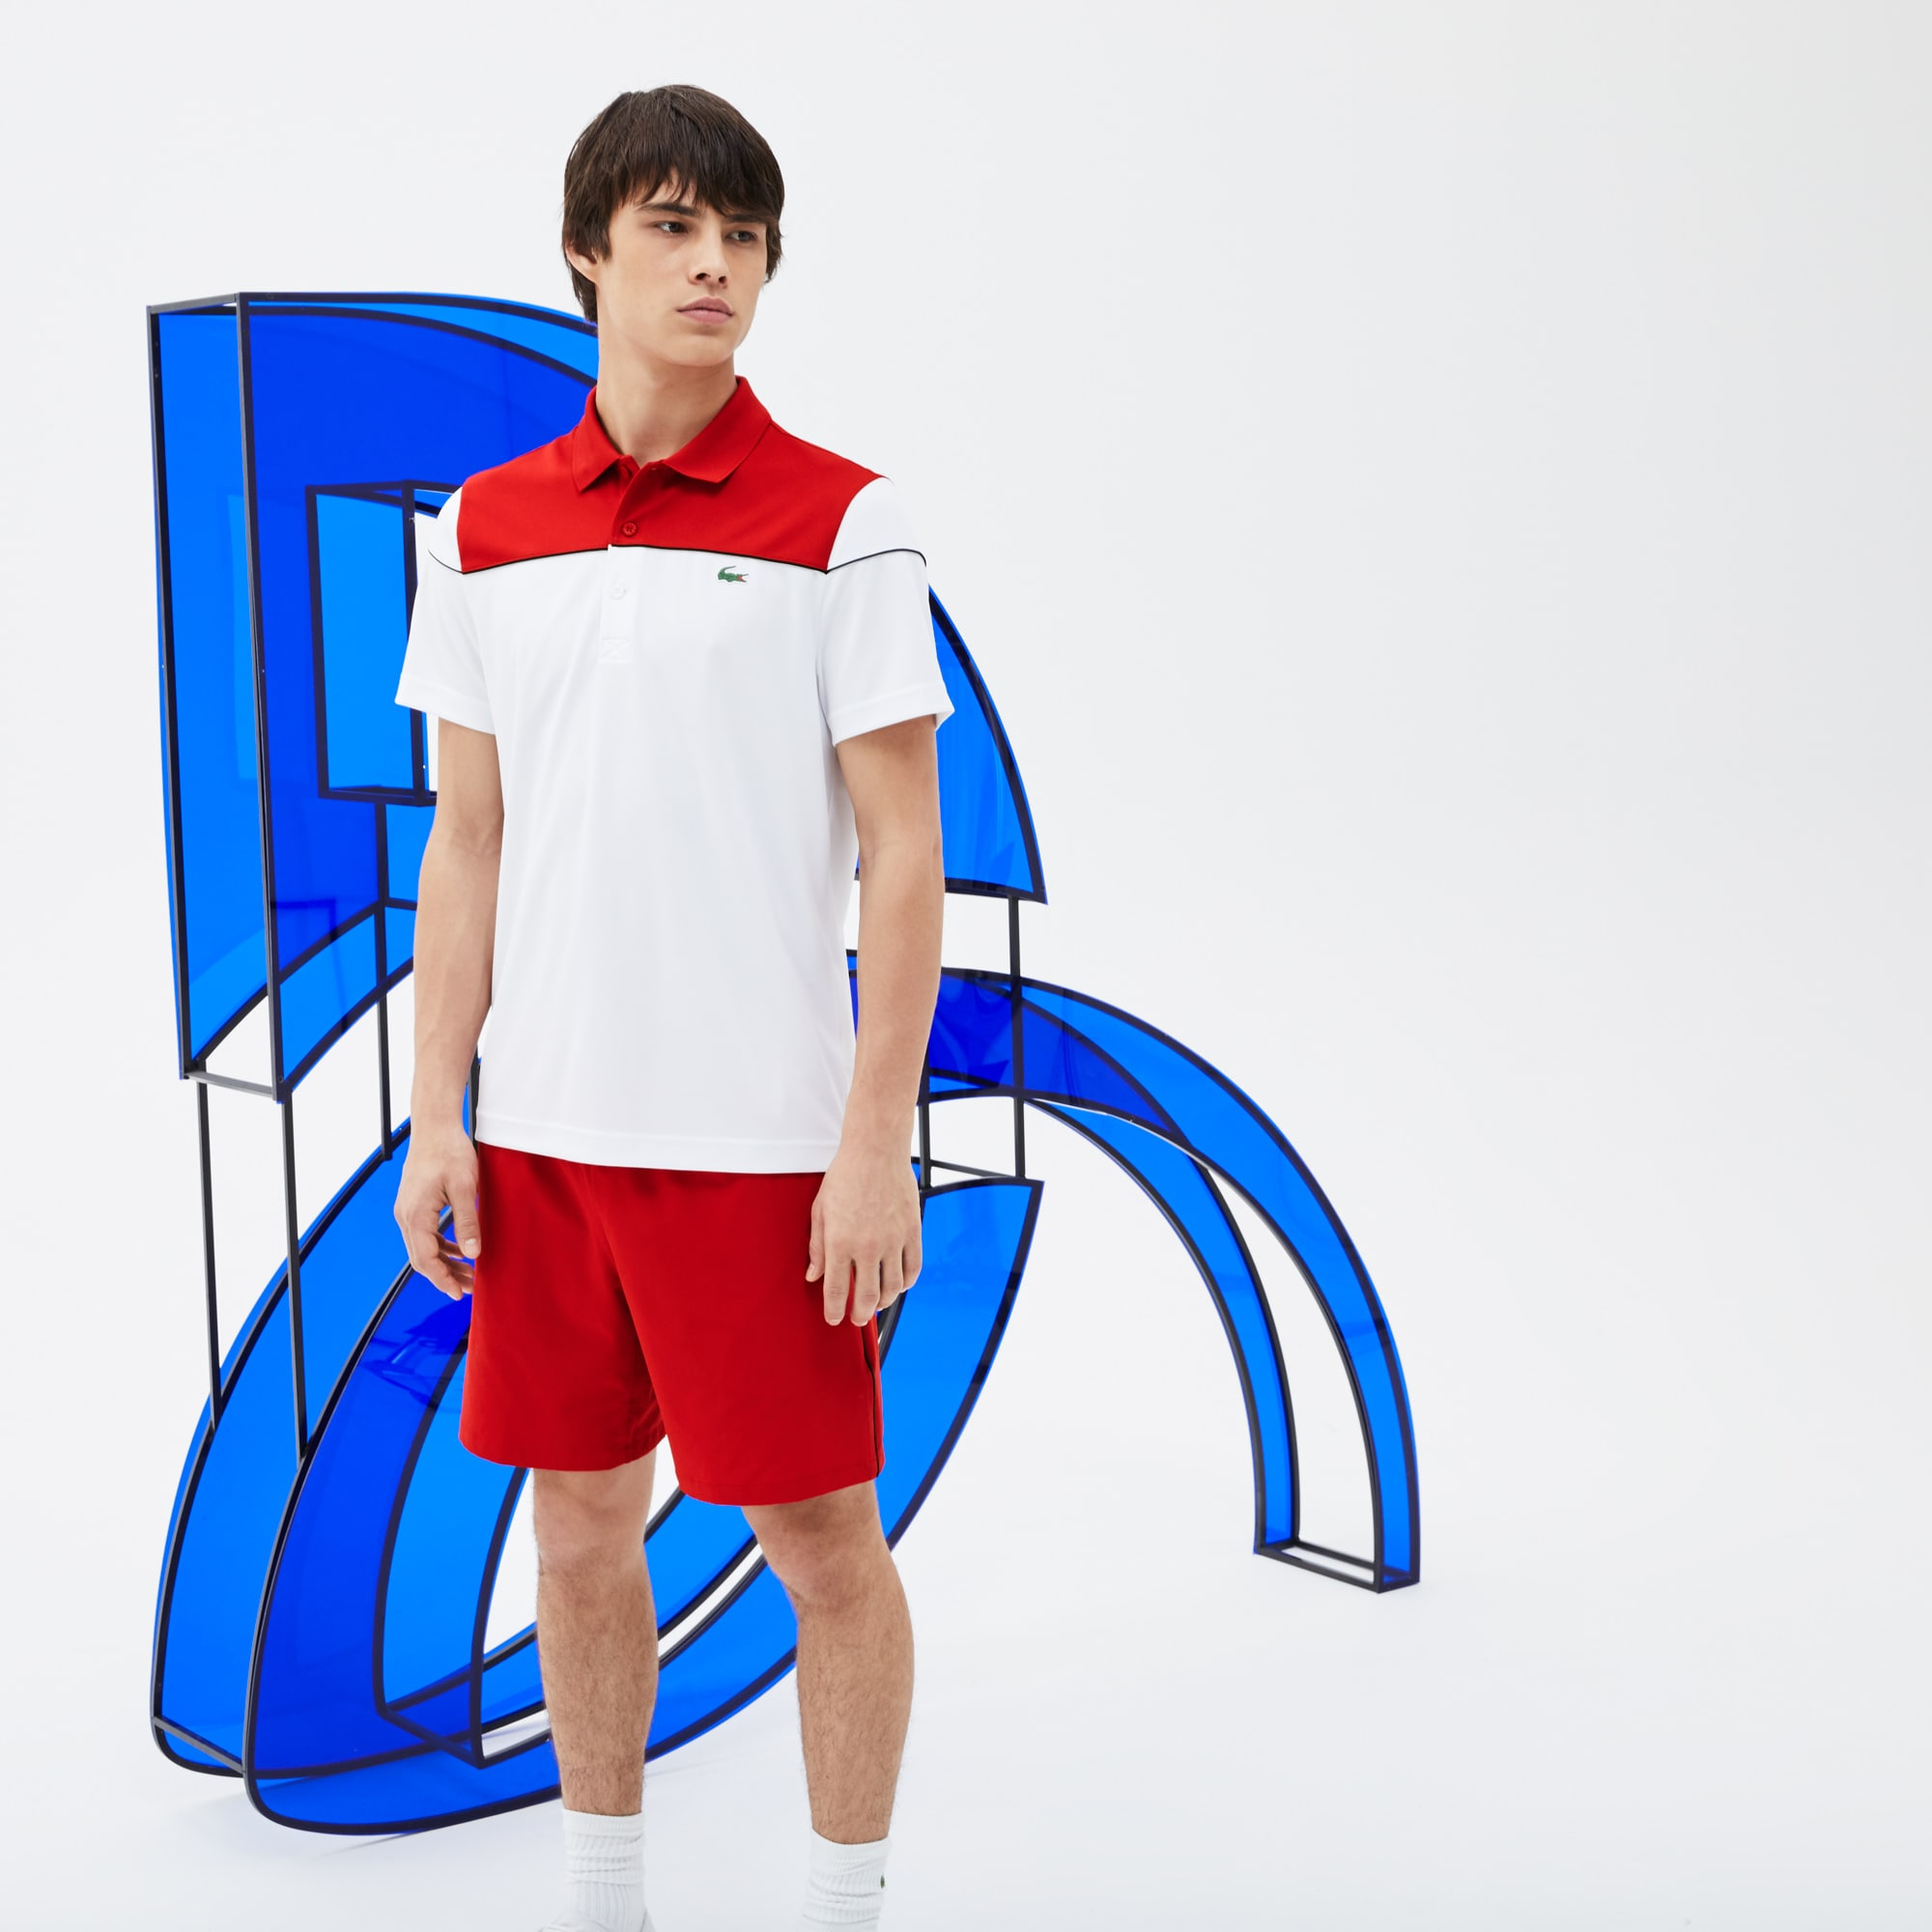 Men's Lacoste SPORT Piped Stretch Technical Shorts - Novak Djokovic Supporter Collection